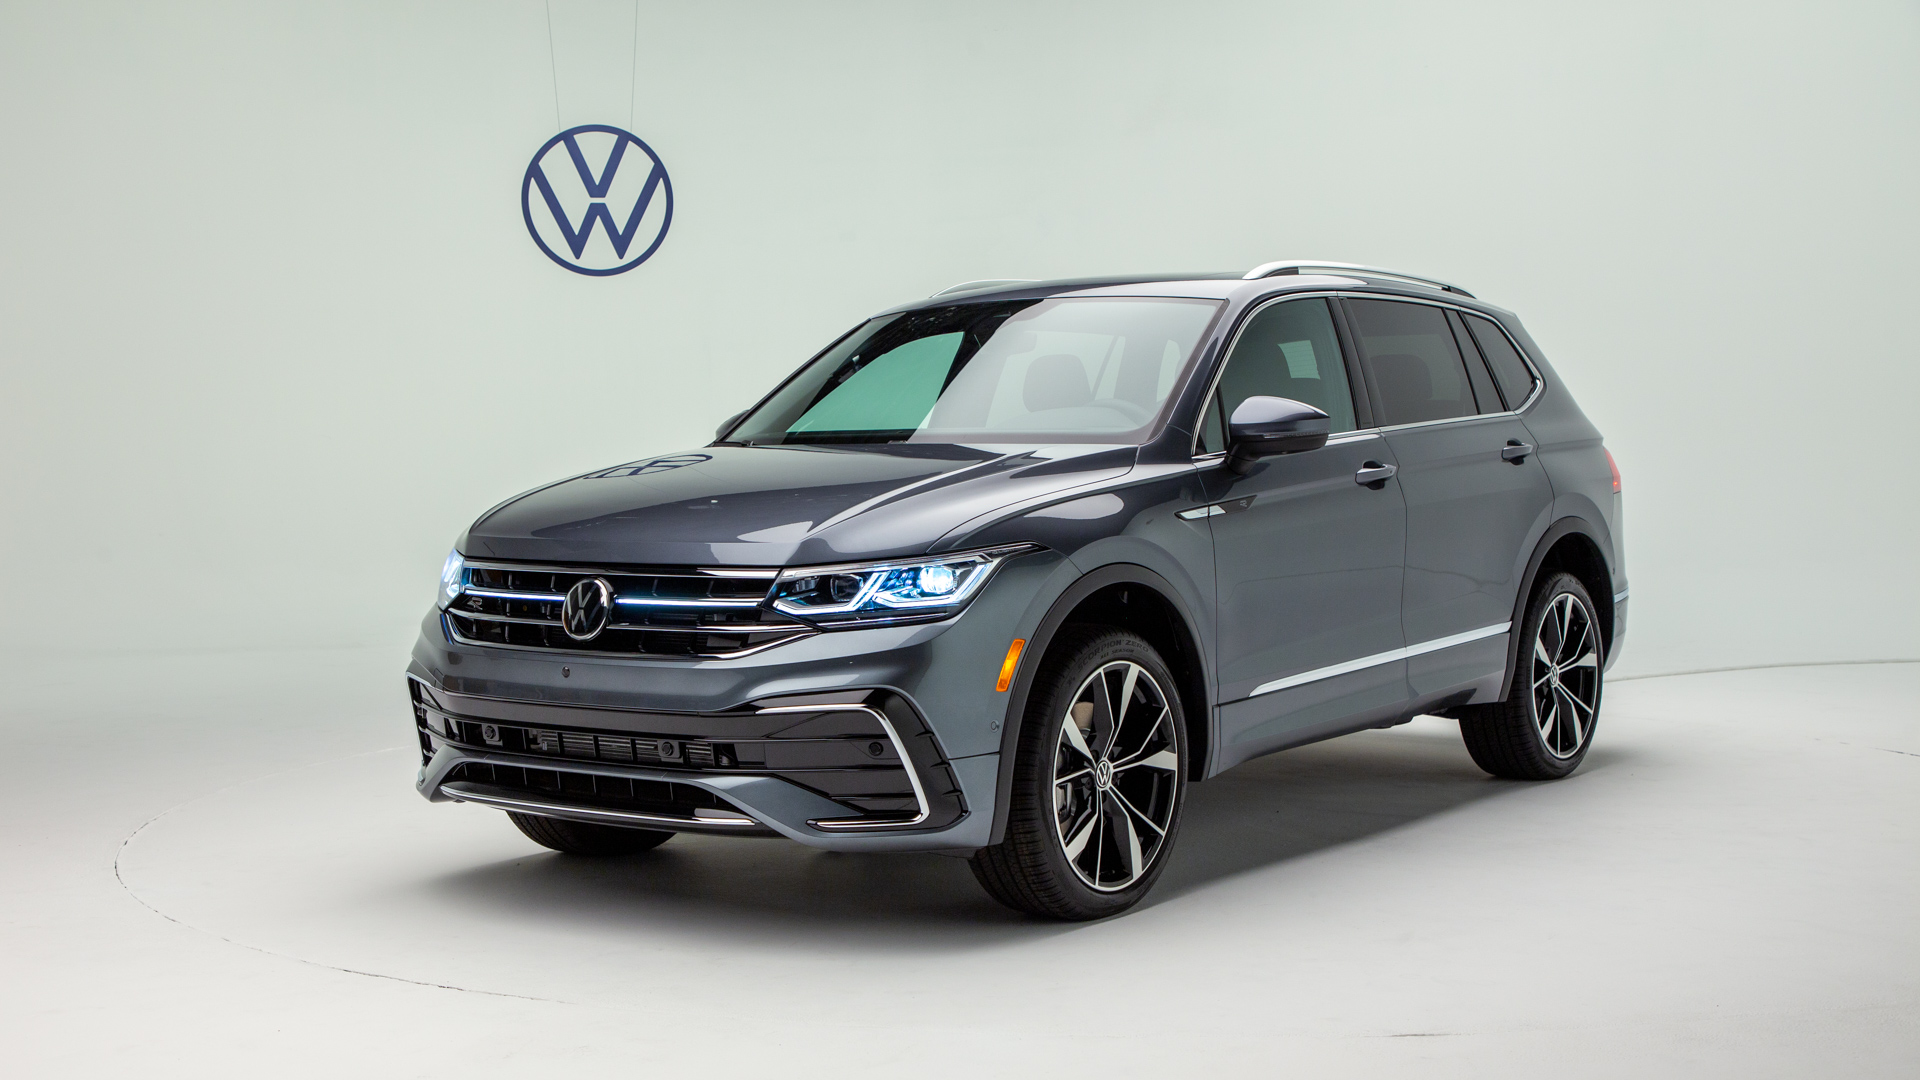 2022 Volkswagen Tiguan preview: Update for compact crossover with a light touch